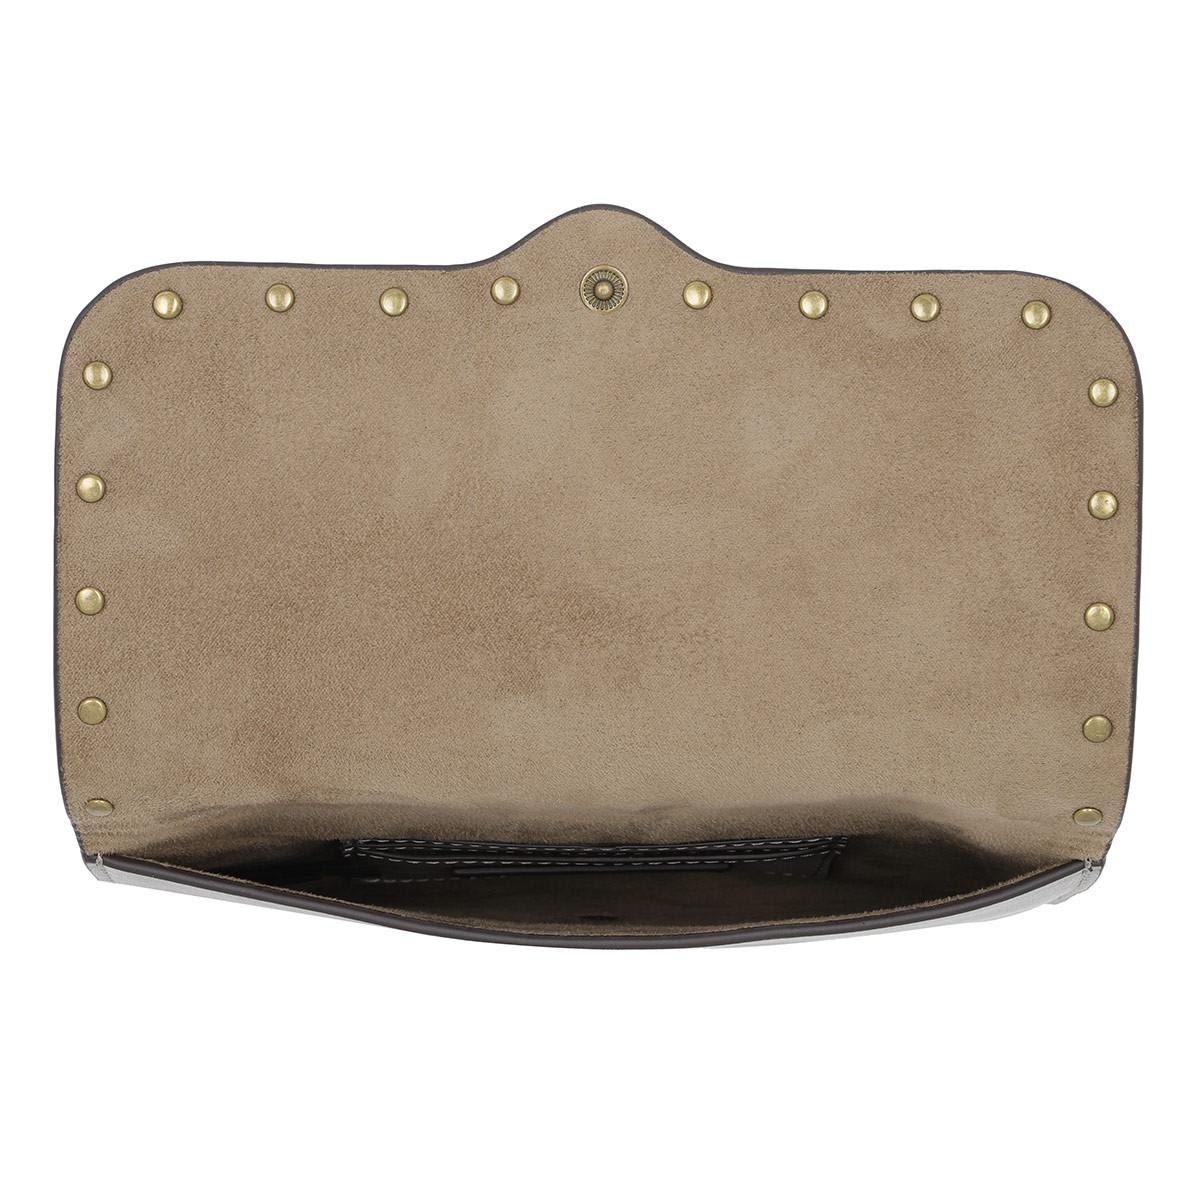 Rebecca Minkoff Leather Ring Crossbody Taupe